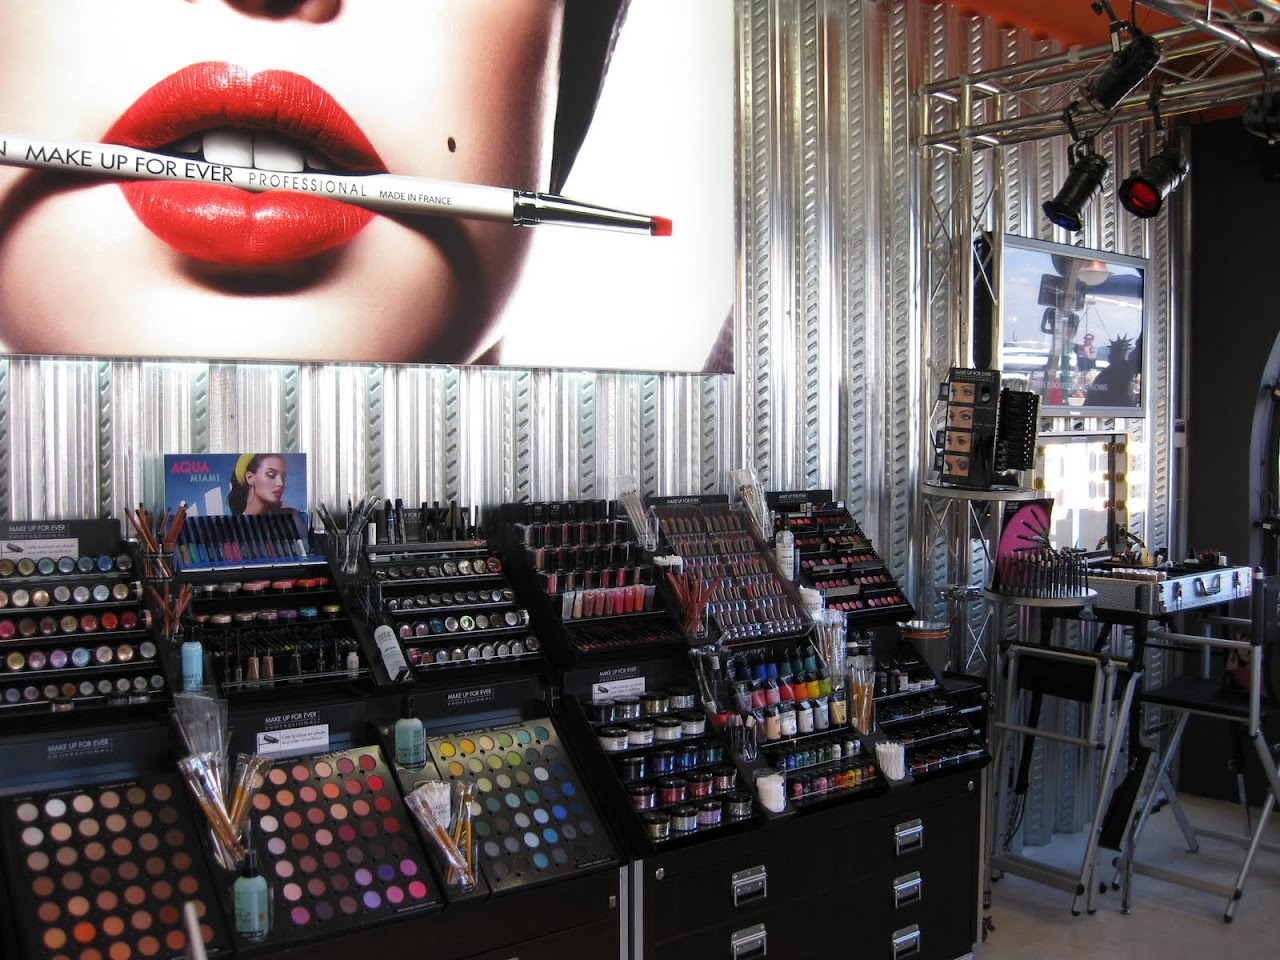 Make Up For Ever's St. Tropez Pop Up Store